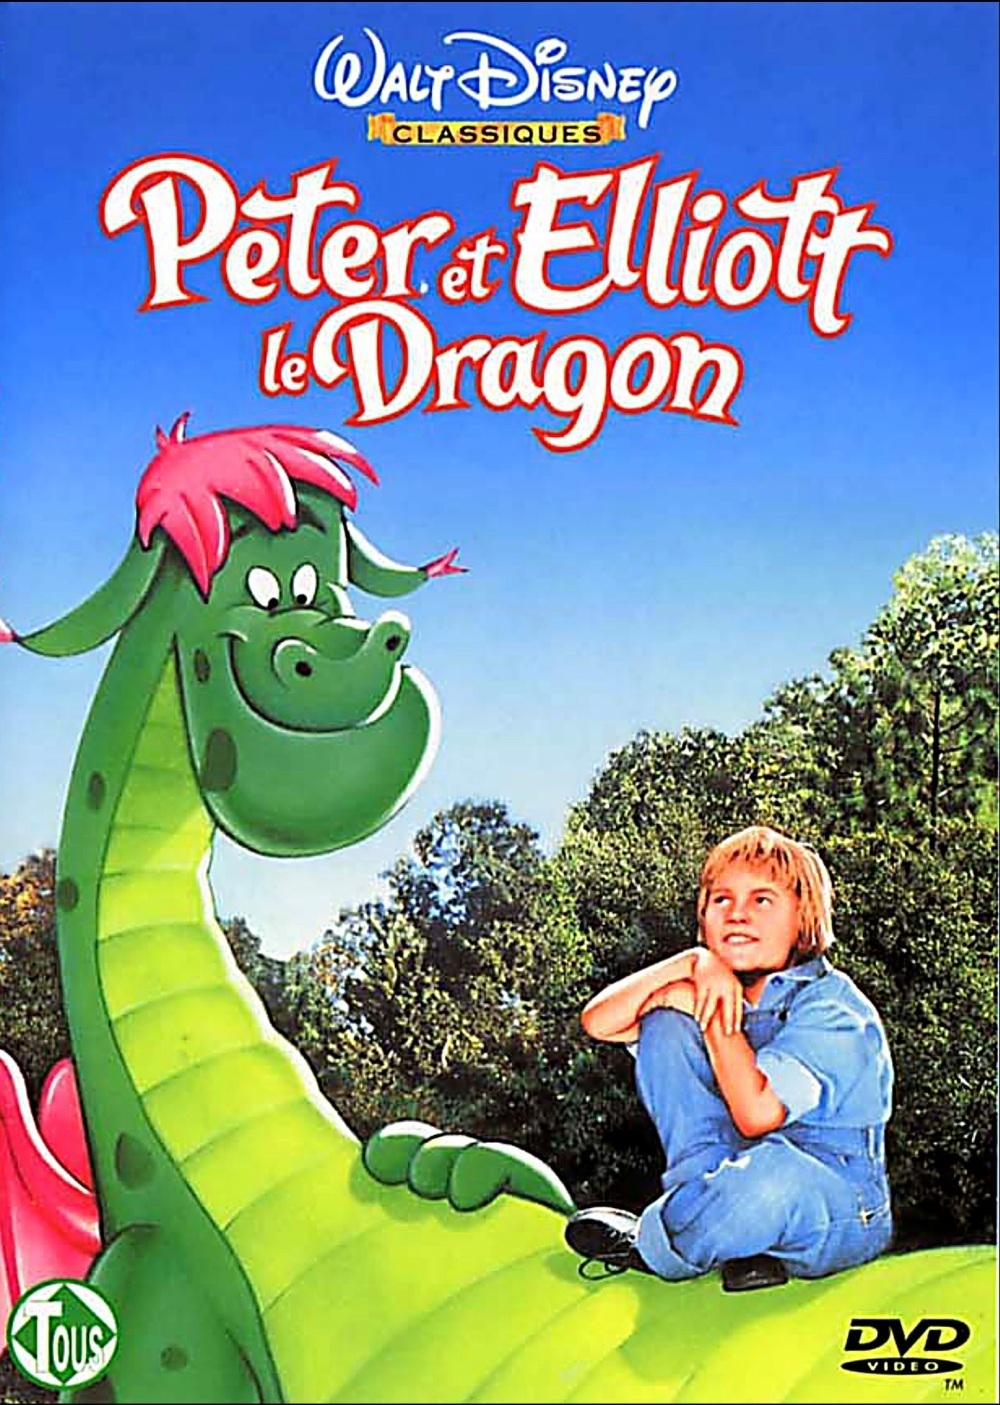 disney peter pete dragon elliott affiche posterdisney peter pete dragon elliott affiche poster